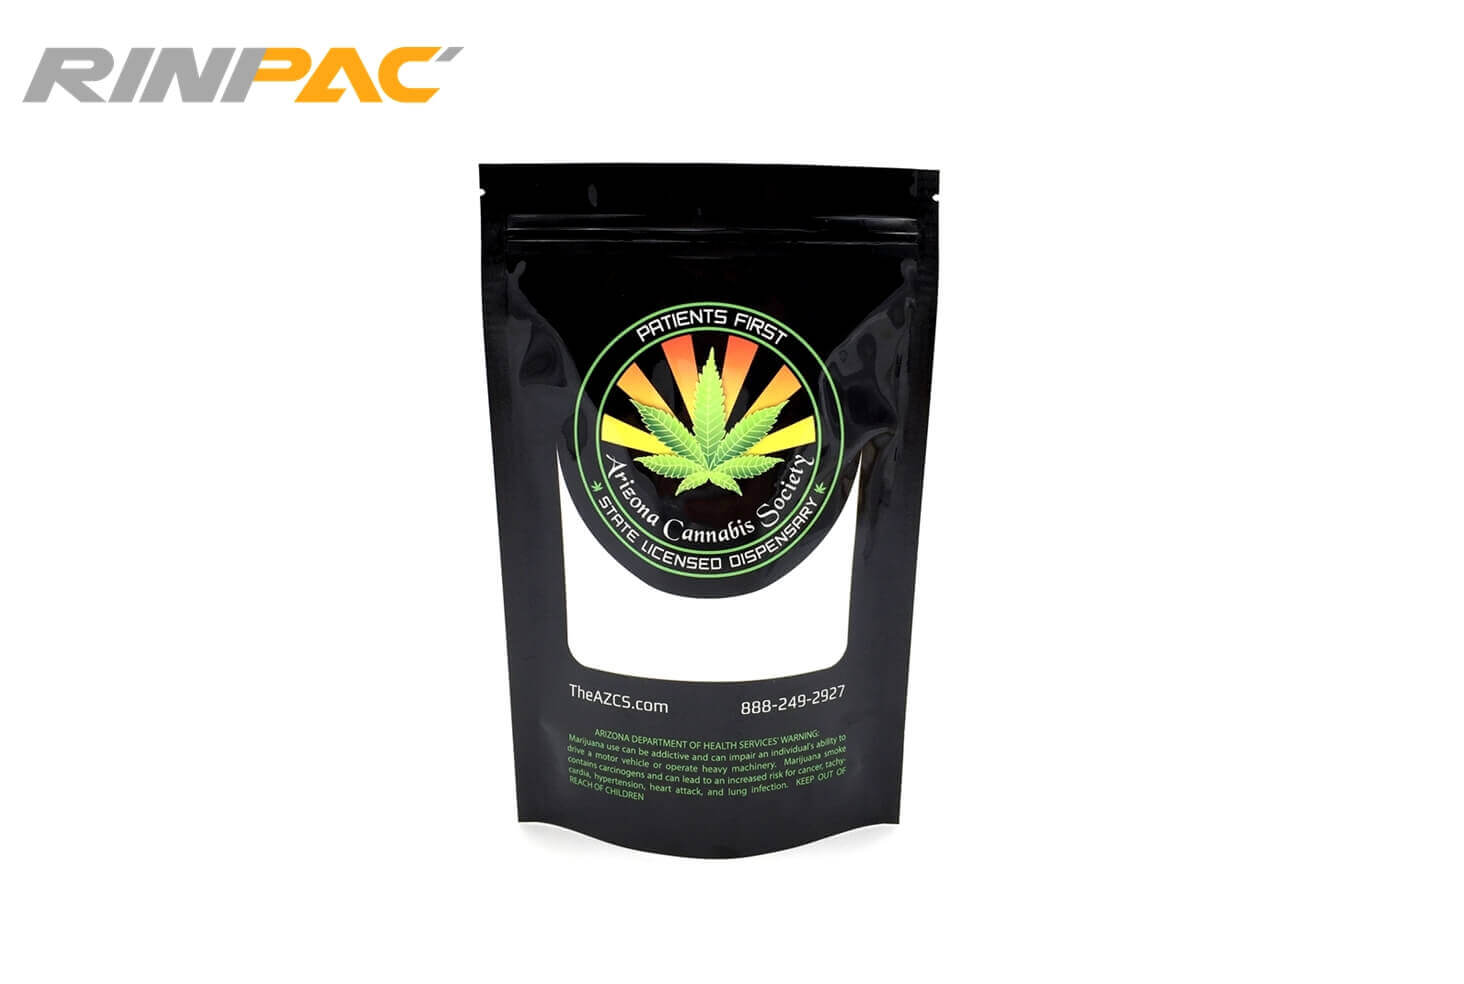 RinPAC Cannabis Packaging 1 - Cannabis Packaging